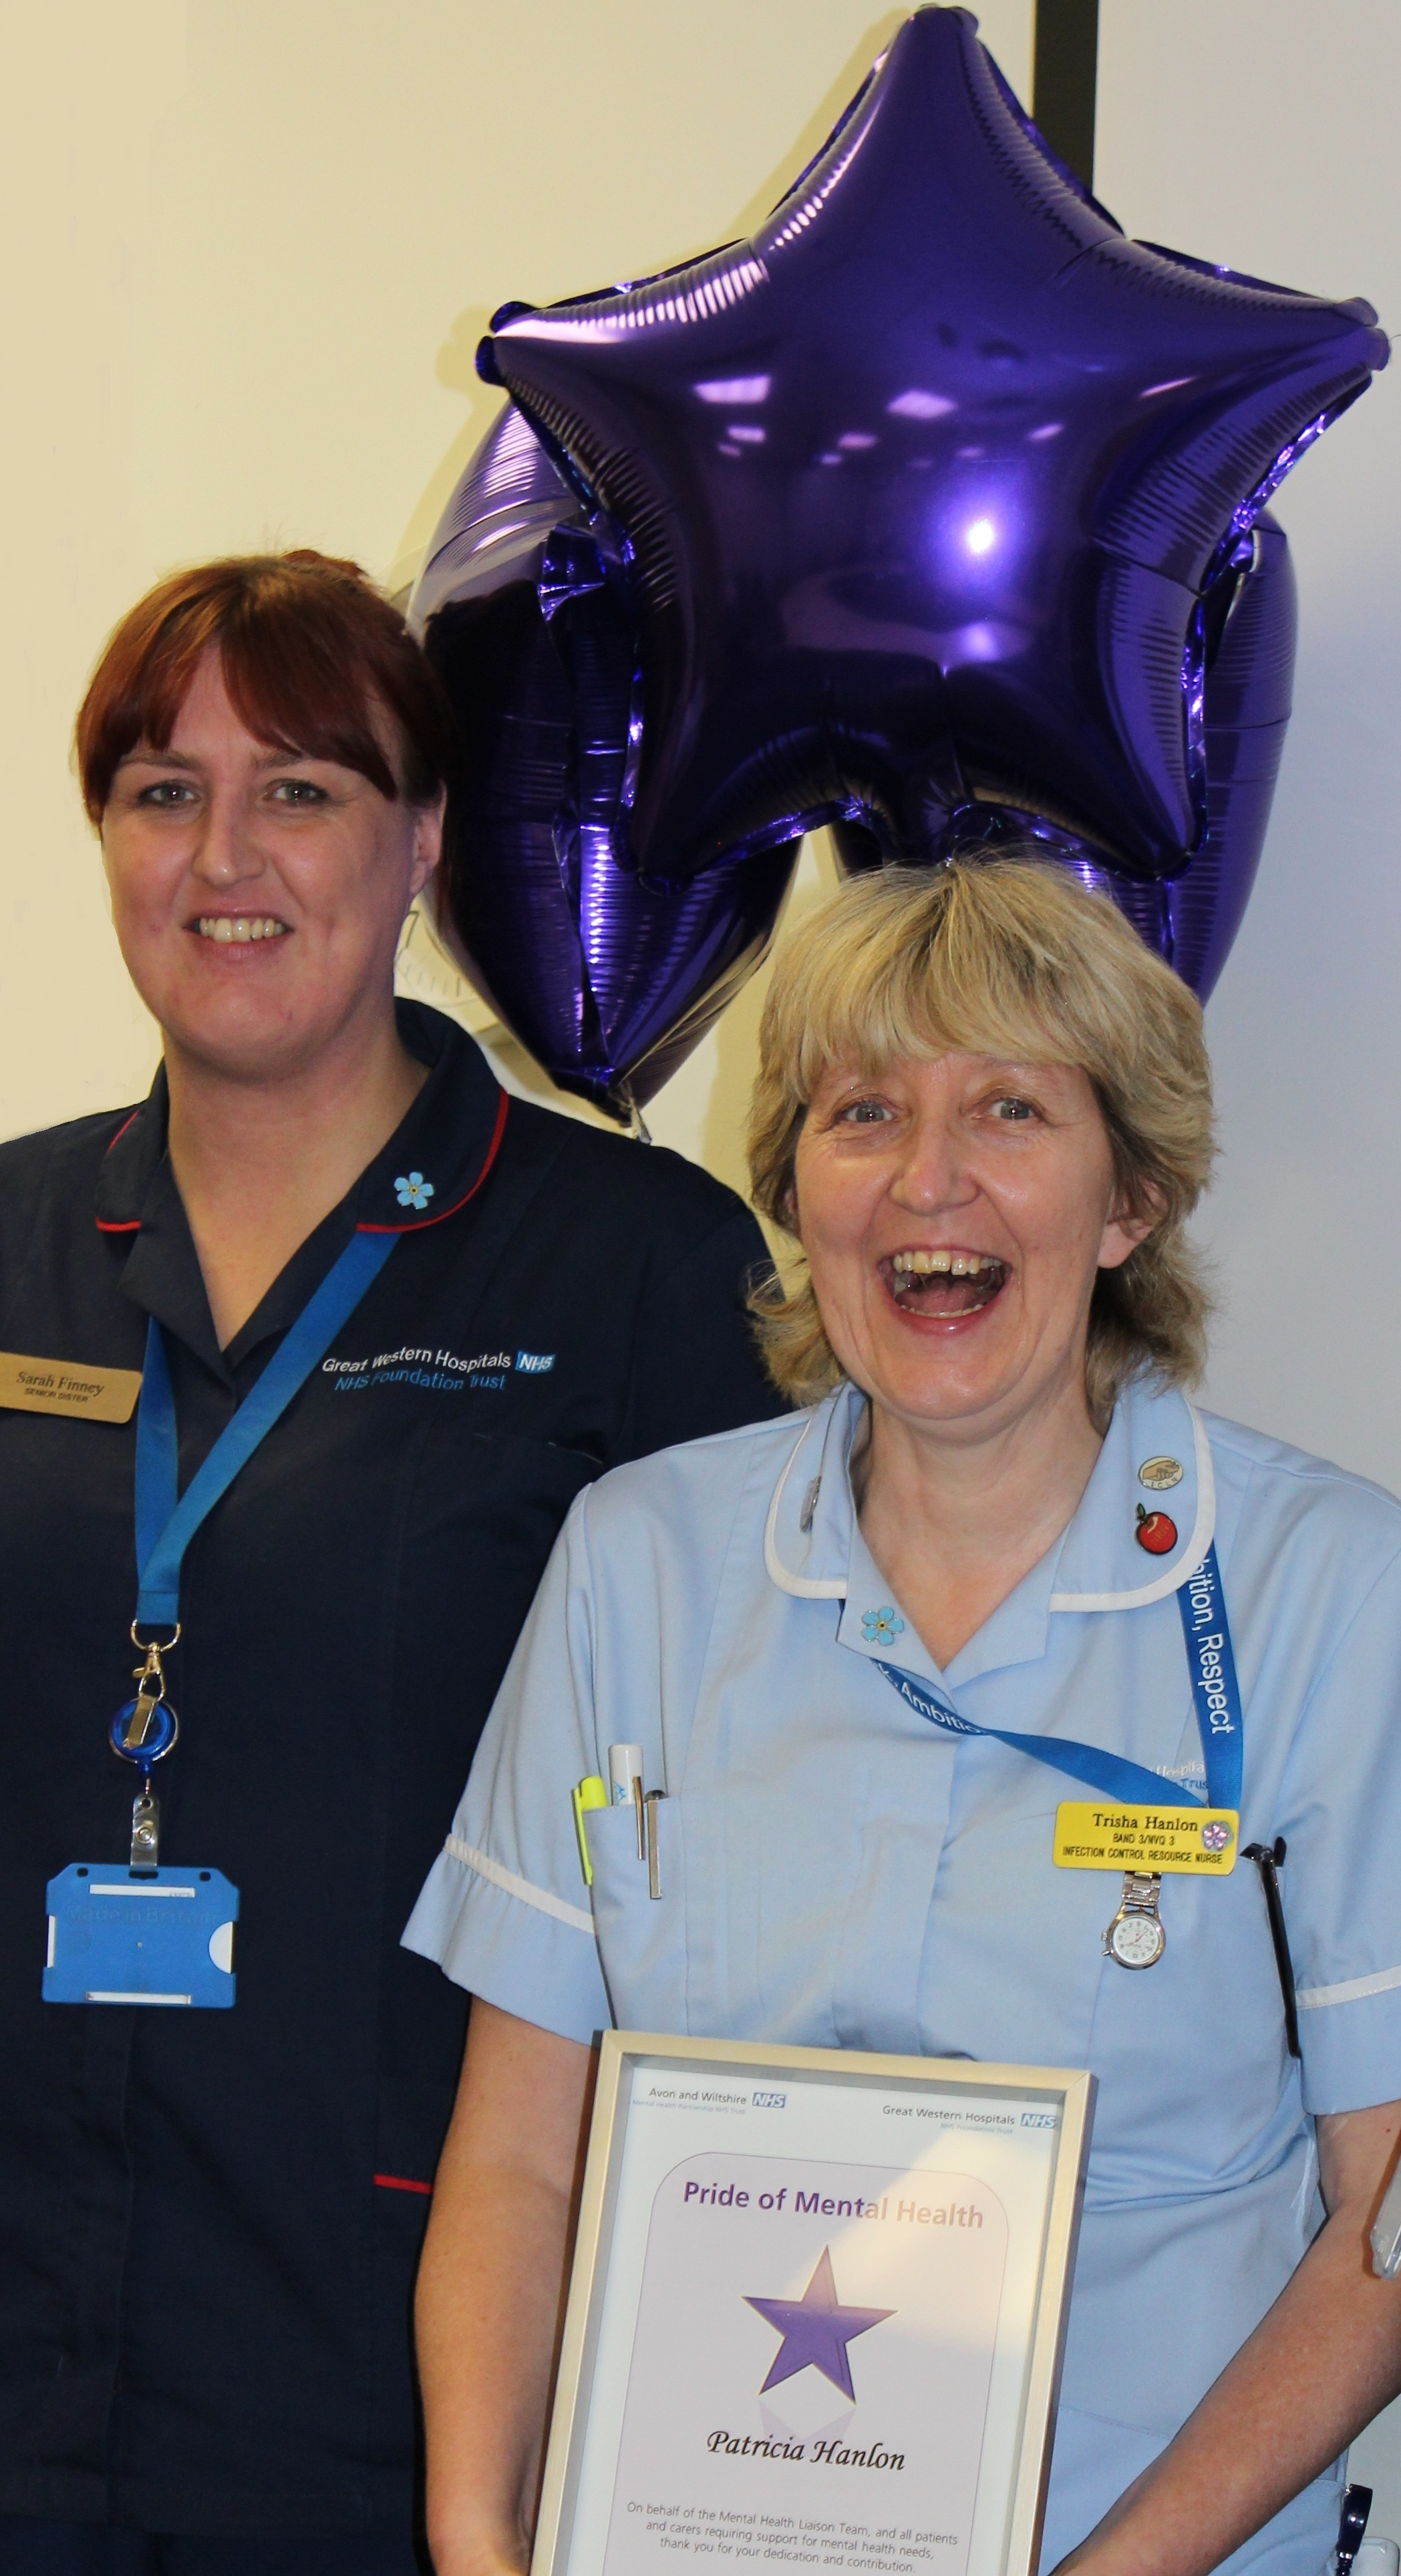 ... This Is Wiltshire: Ward manager Sarah Finney and nursing auxilliary Patricia Hanlon with her award - 3770947